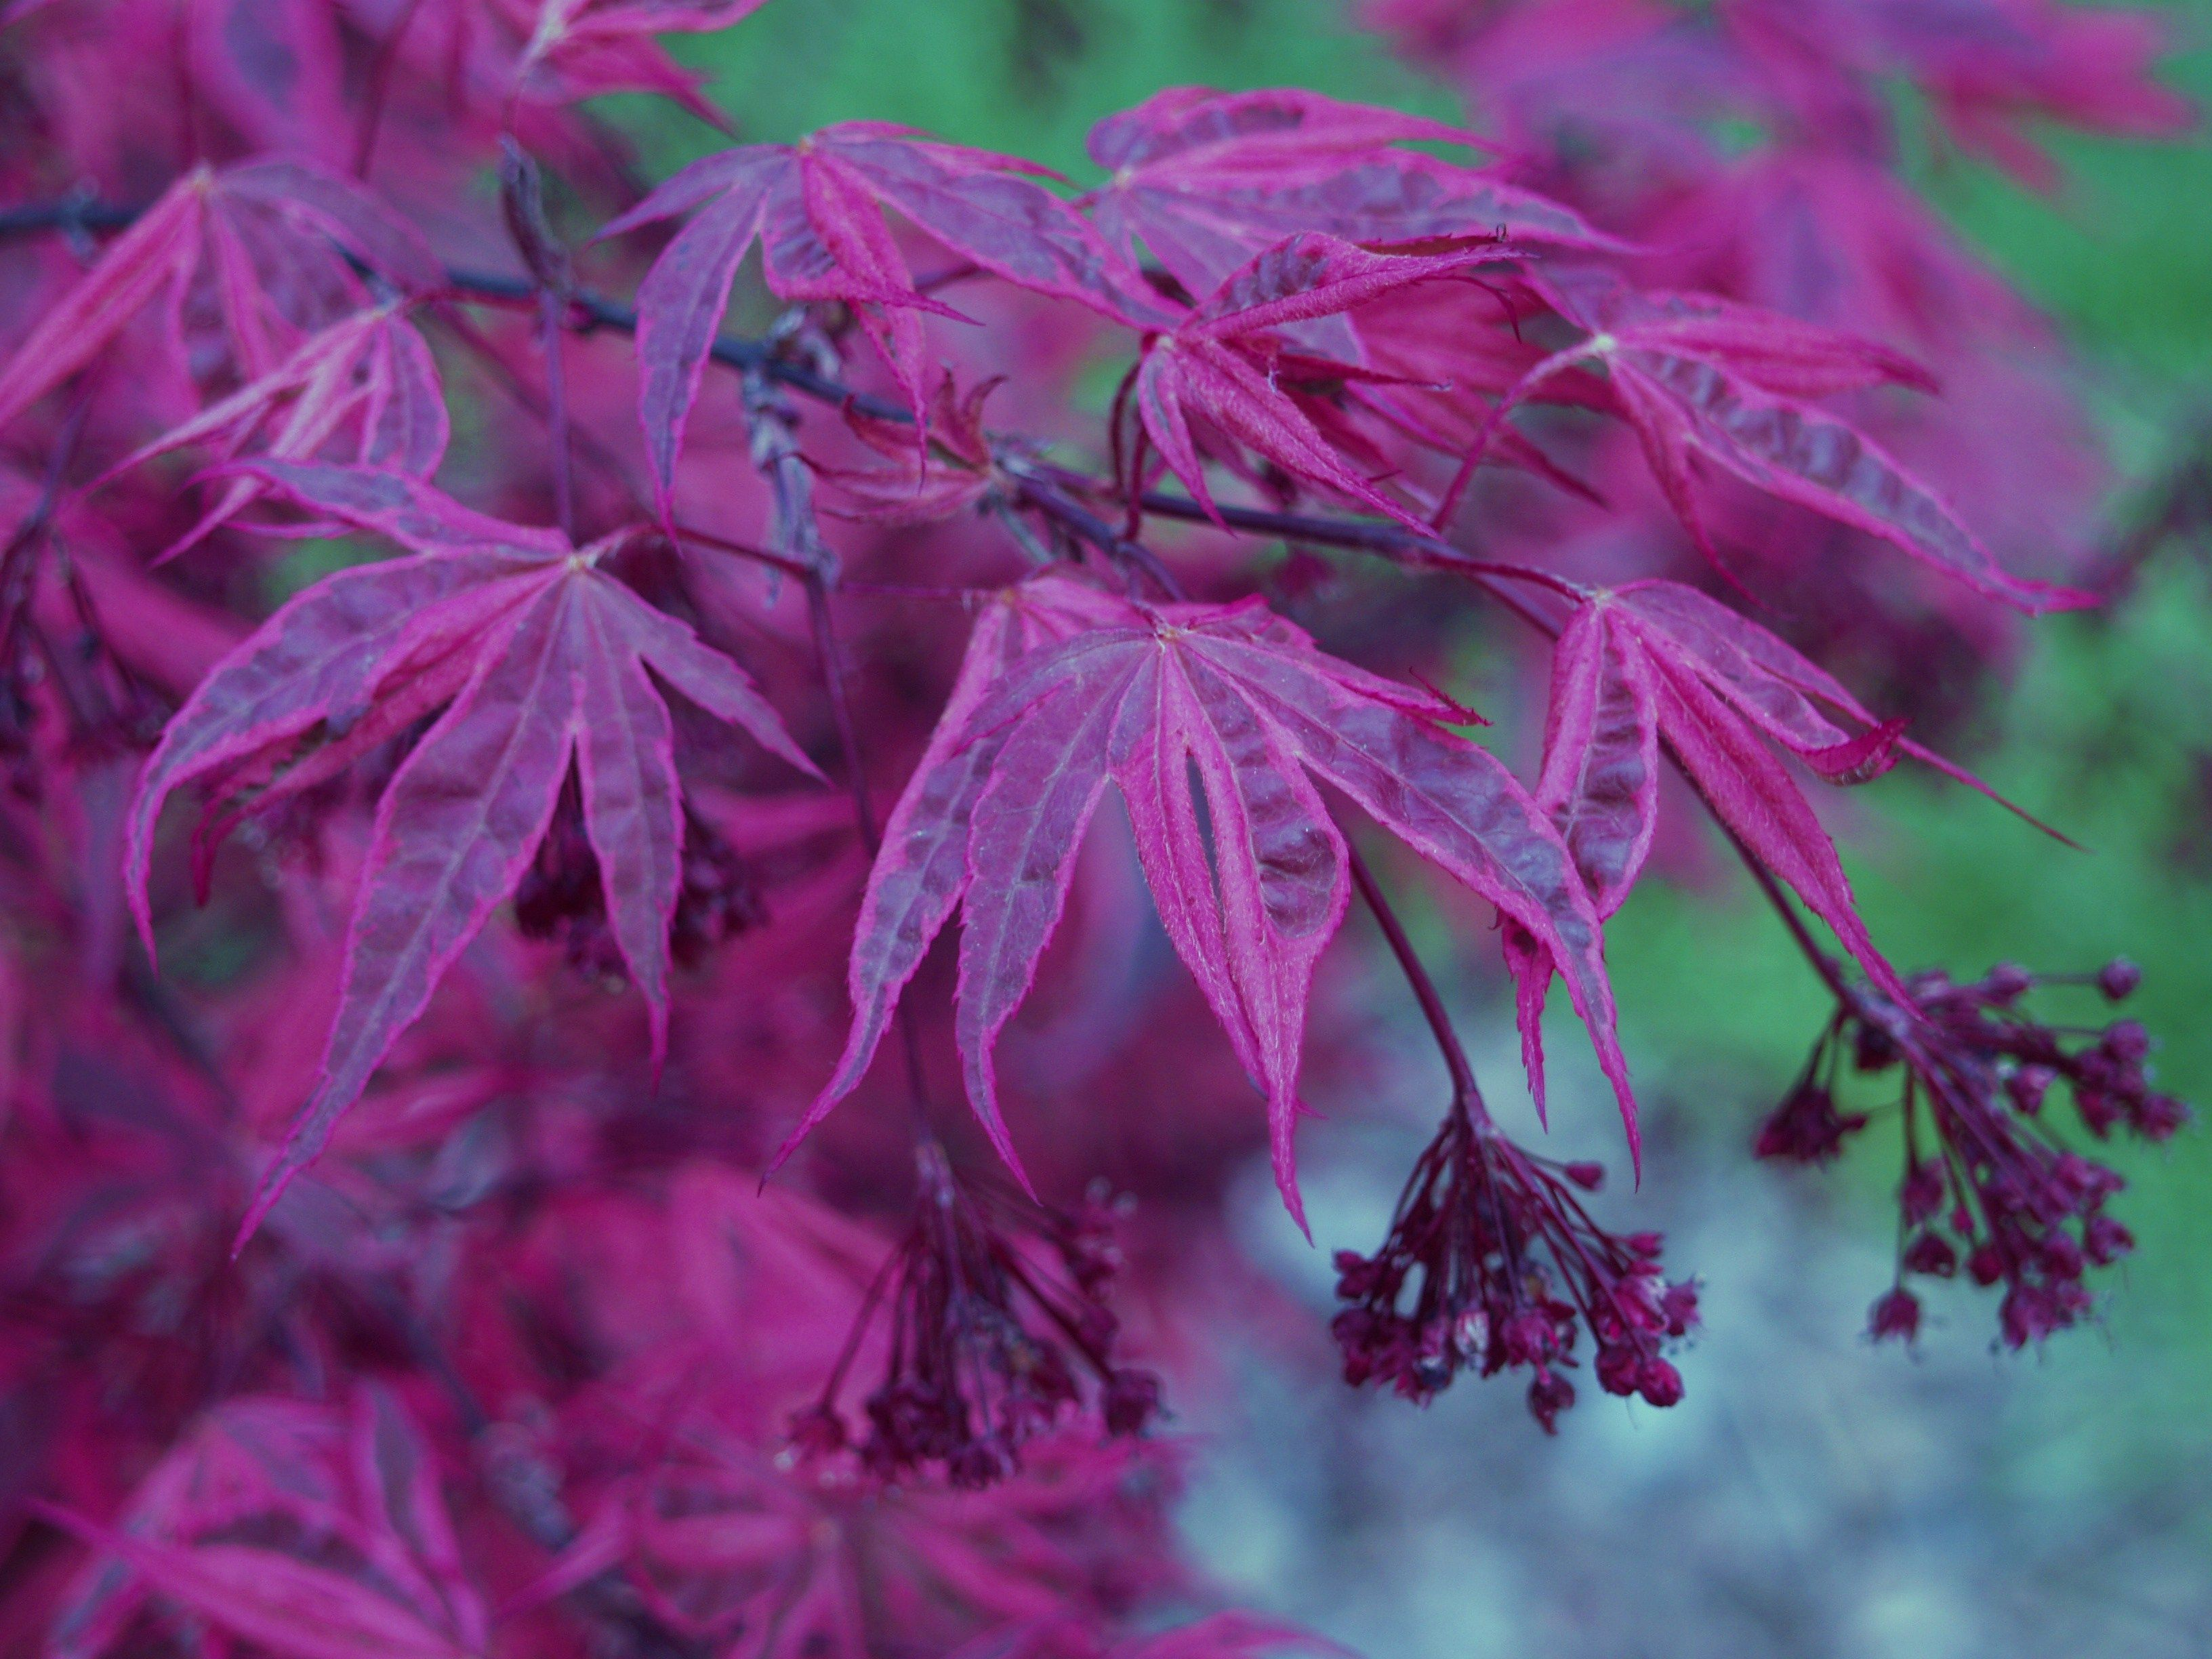 How to care for a fern leaf japanese maple - Acer Palmatum The Japanese Maple Acer Palmatum Includes An Incredibly Diverse And Beautiful Variety Of